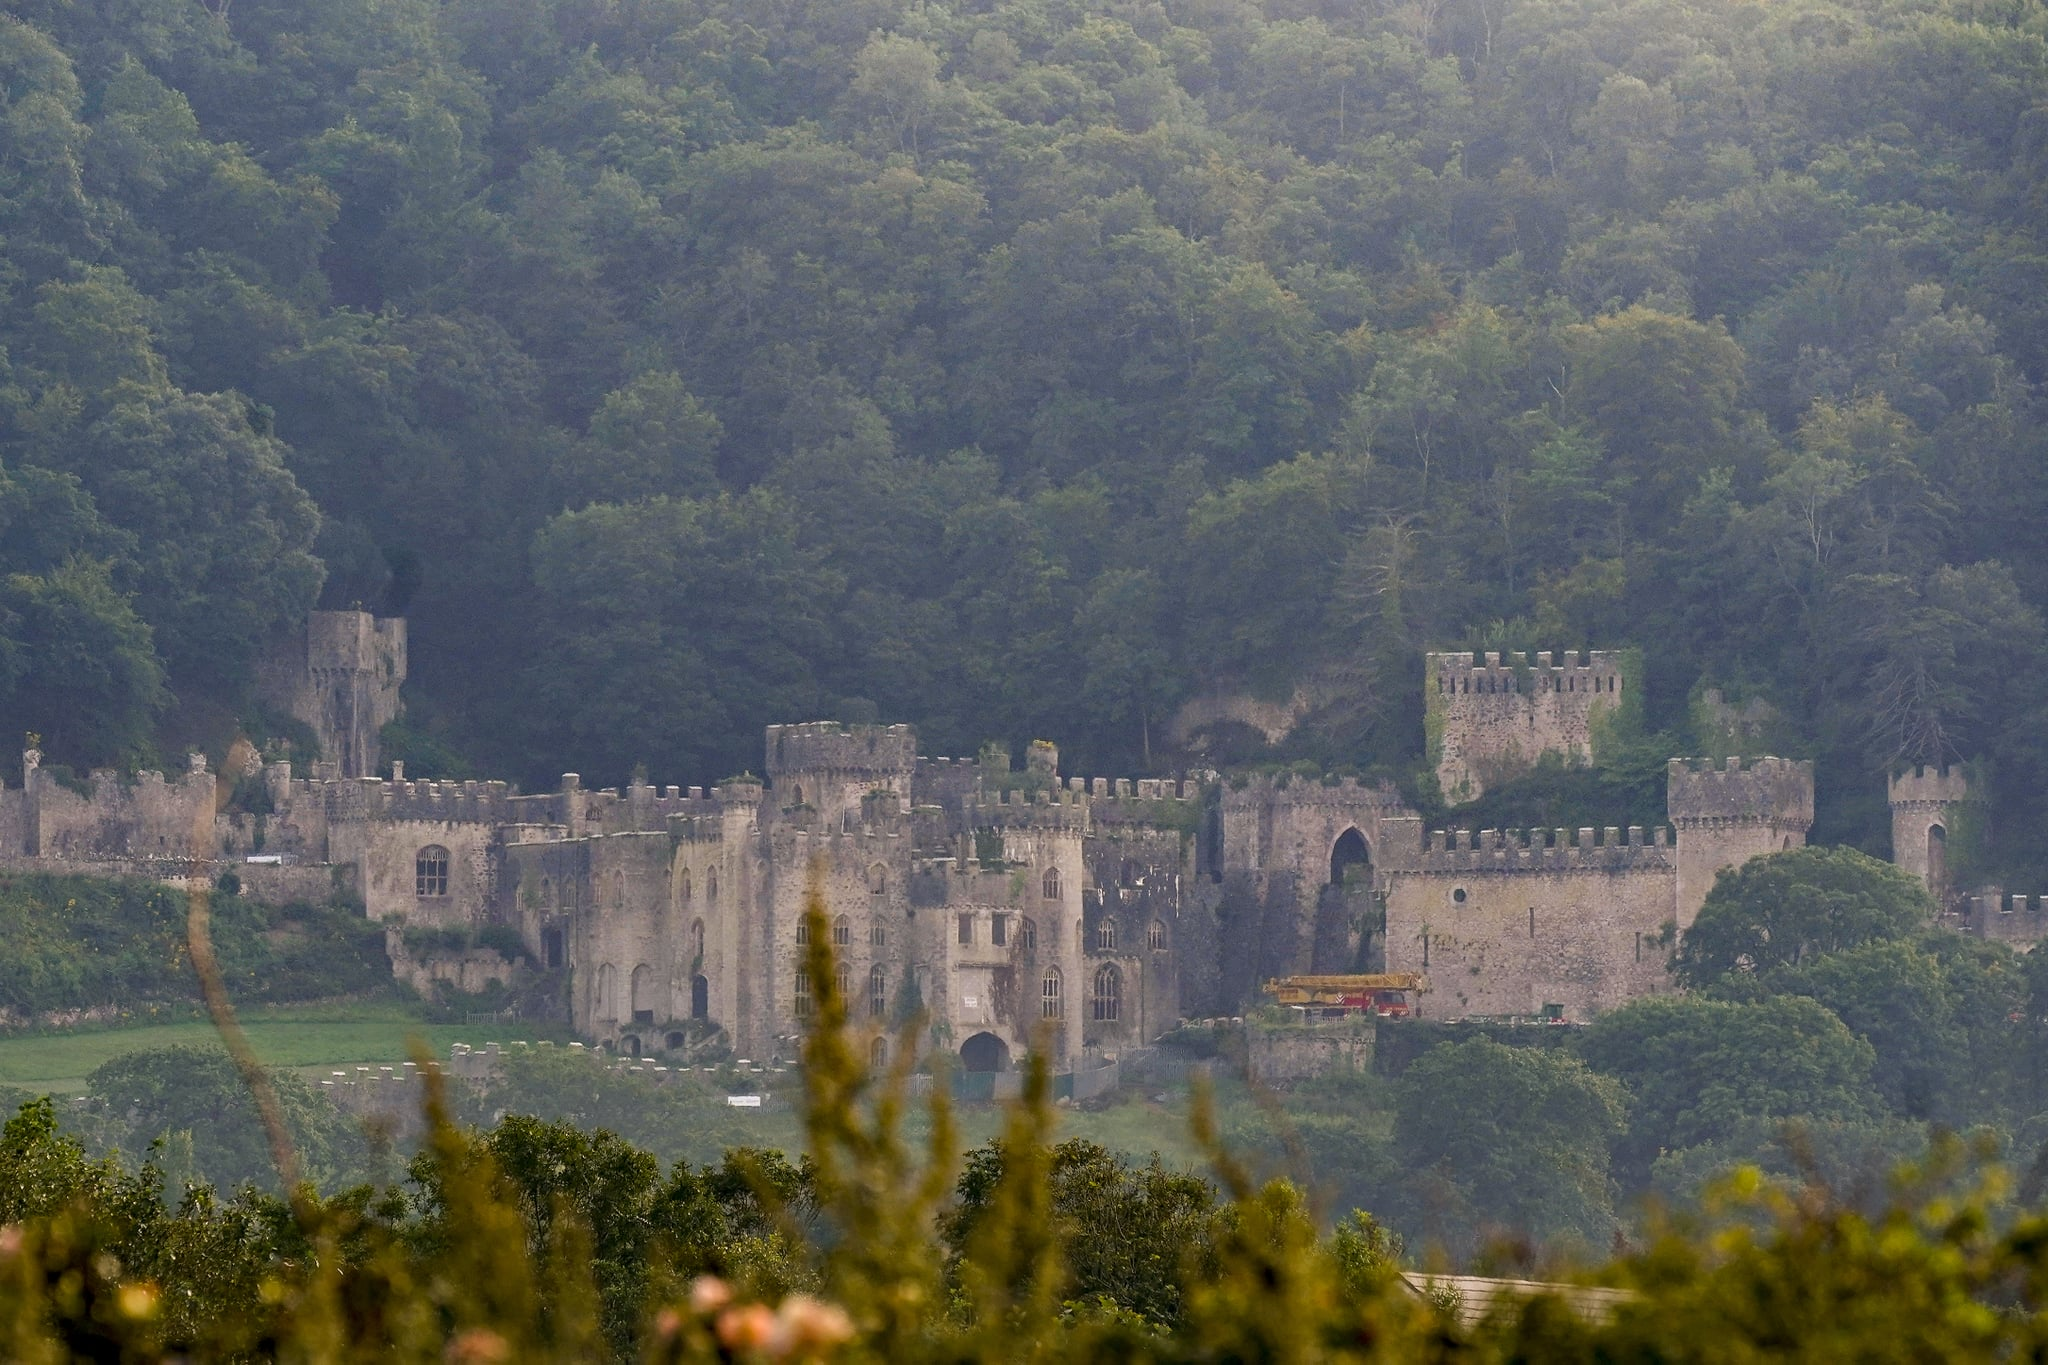 ABERGELE, WALES - AUGUST 14:  A general view of Castell Gwyrch on August 14, 2020 in Abergele, Wales. Gwyrch Castle rumoured to be the set of this year's ITV reality TV show